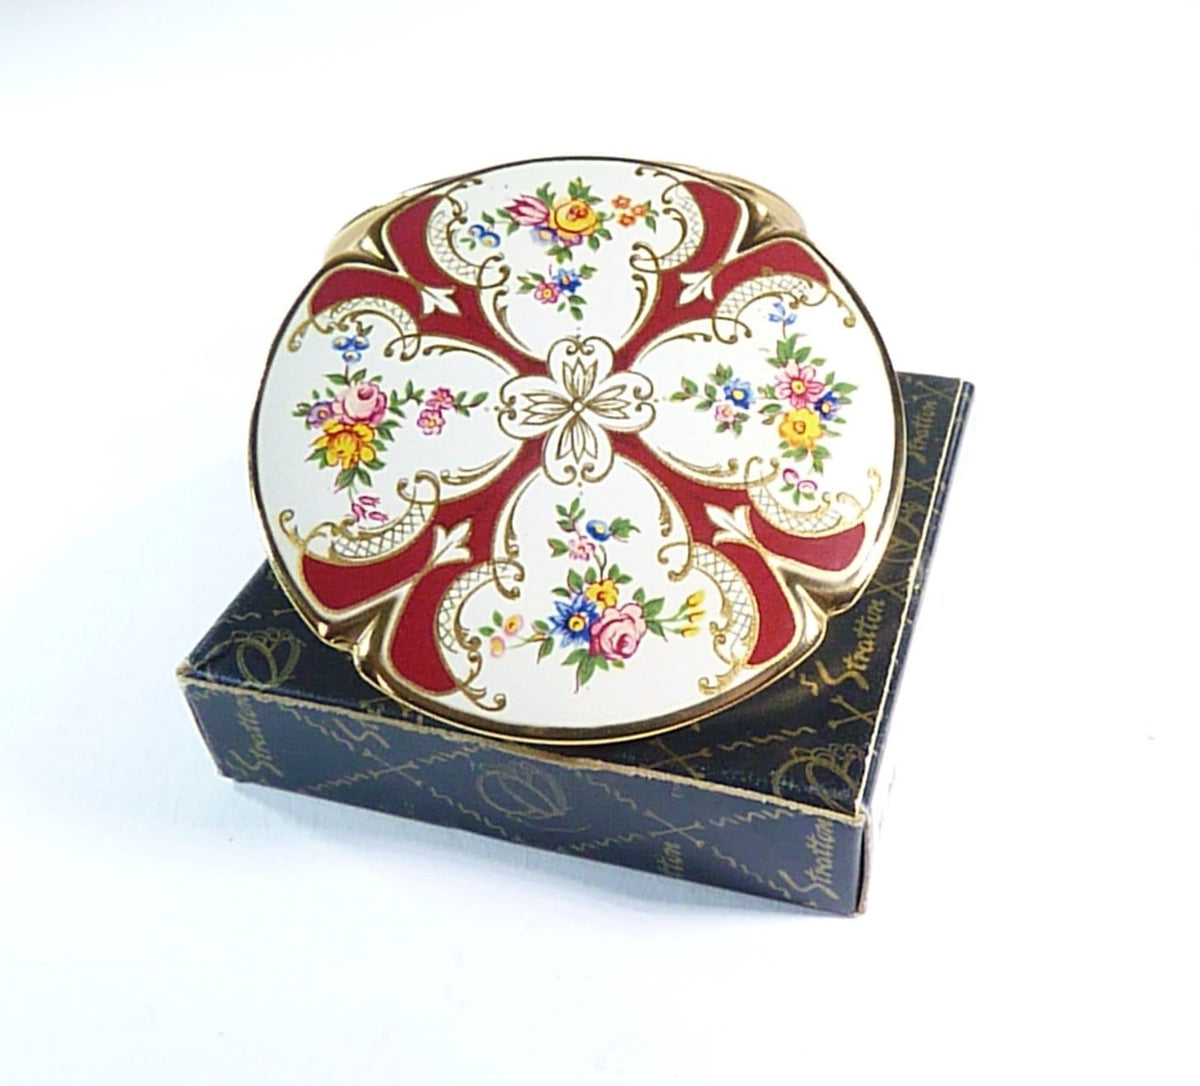 rare Stratton Piccadilly powder compact